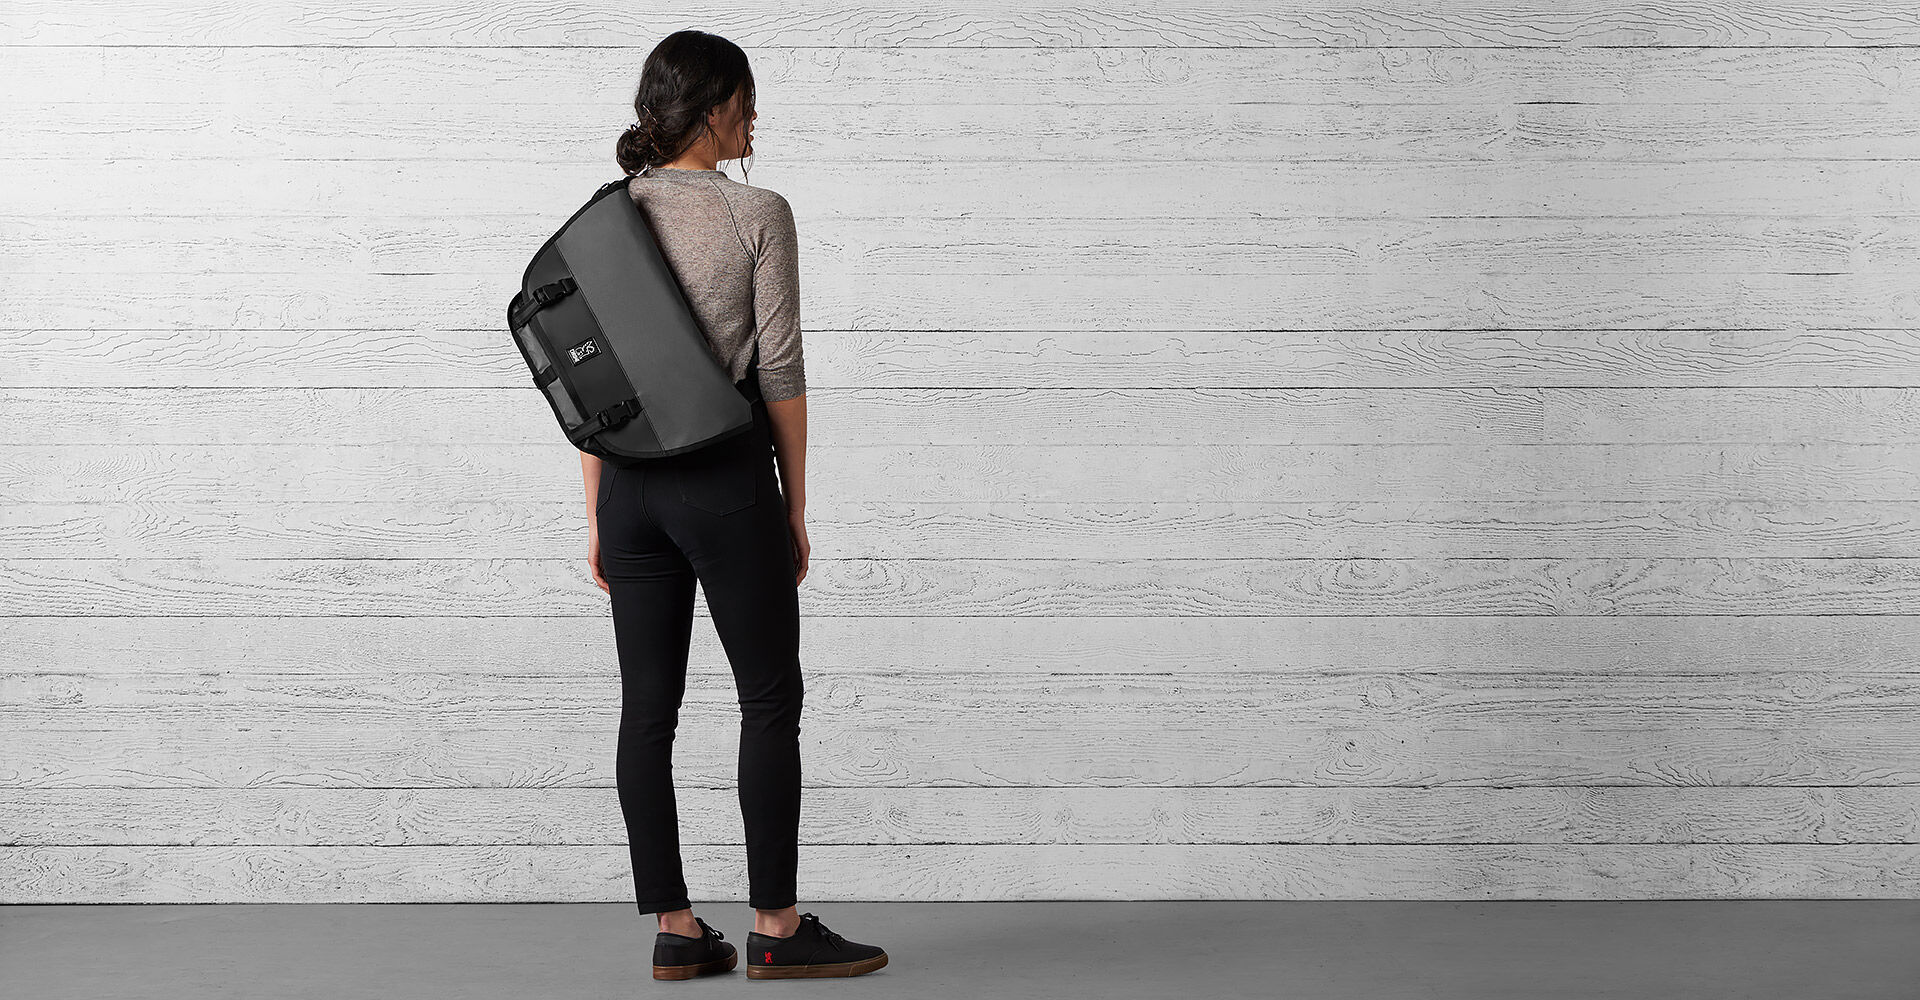 734e7e3f17 The Welterweight Mini Metro Messenger Bag in Charcoal   Black - wide view.